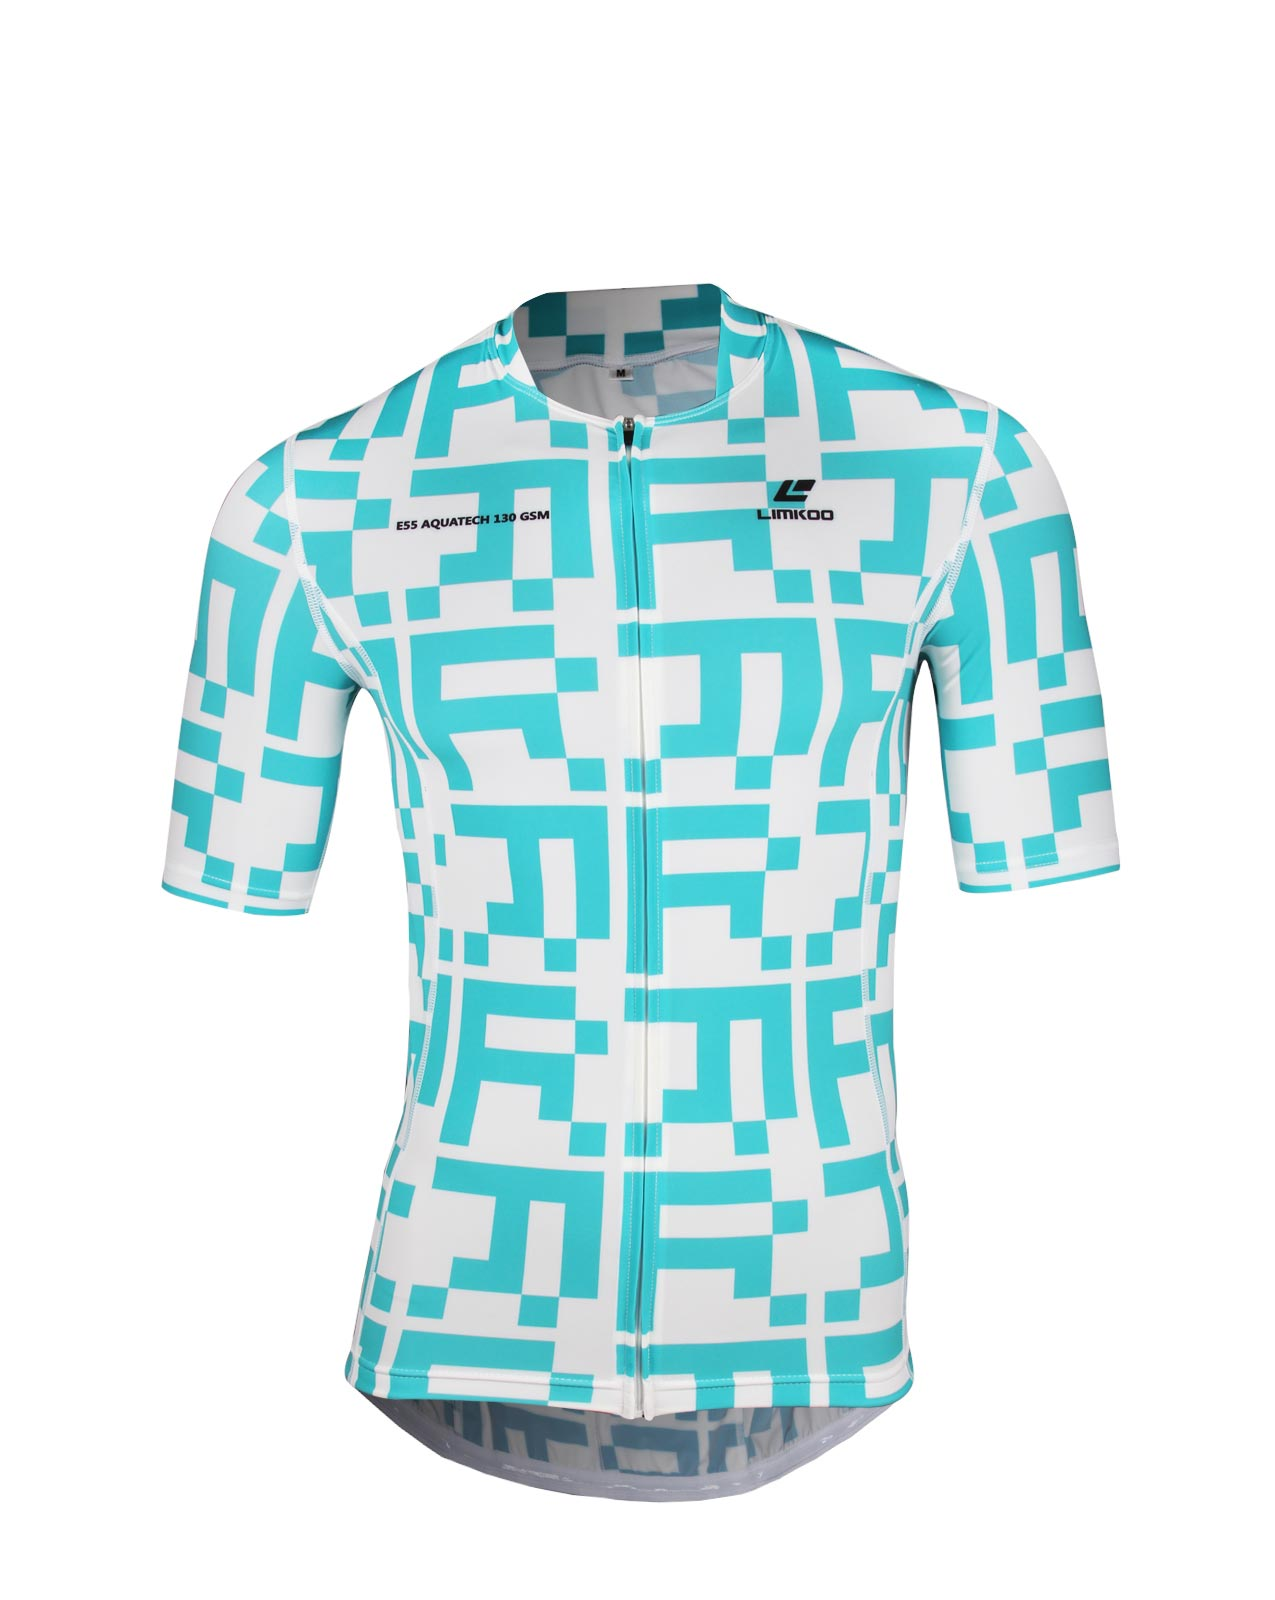 French AQUATECH Short Sleeve Tri Top